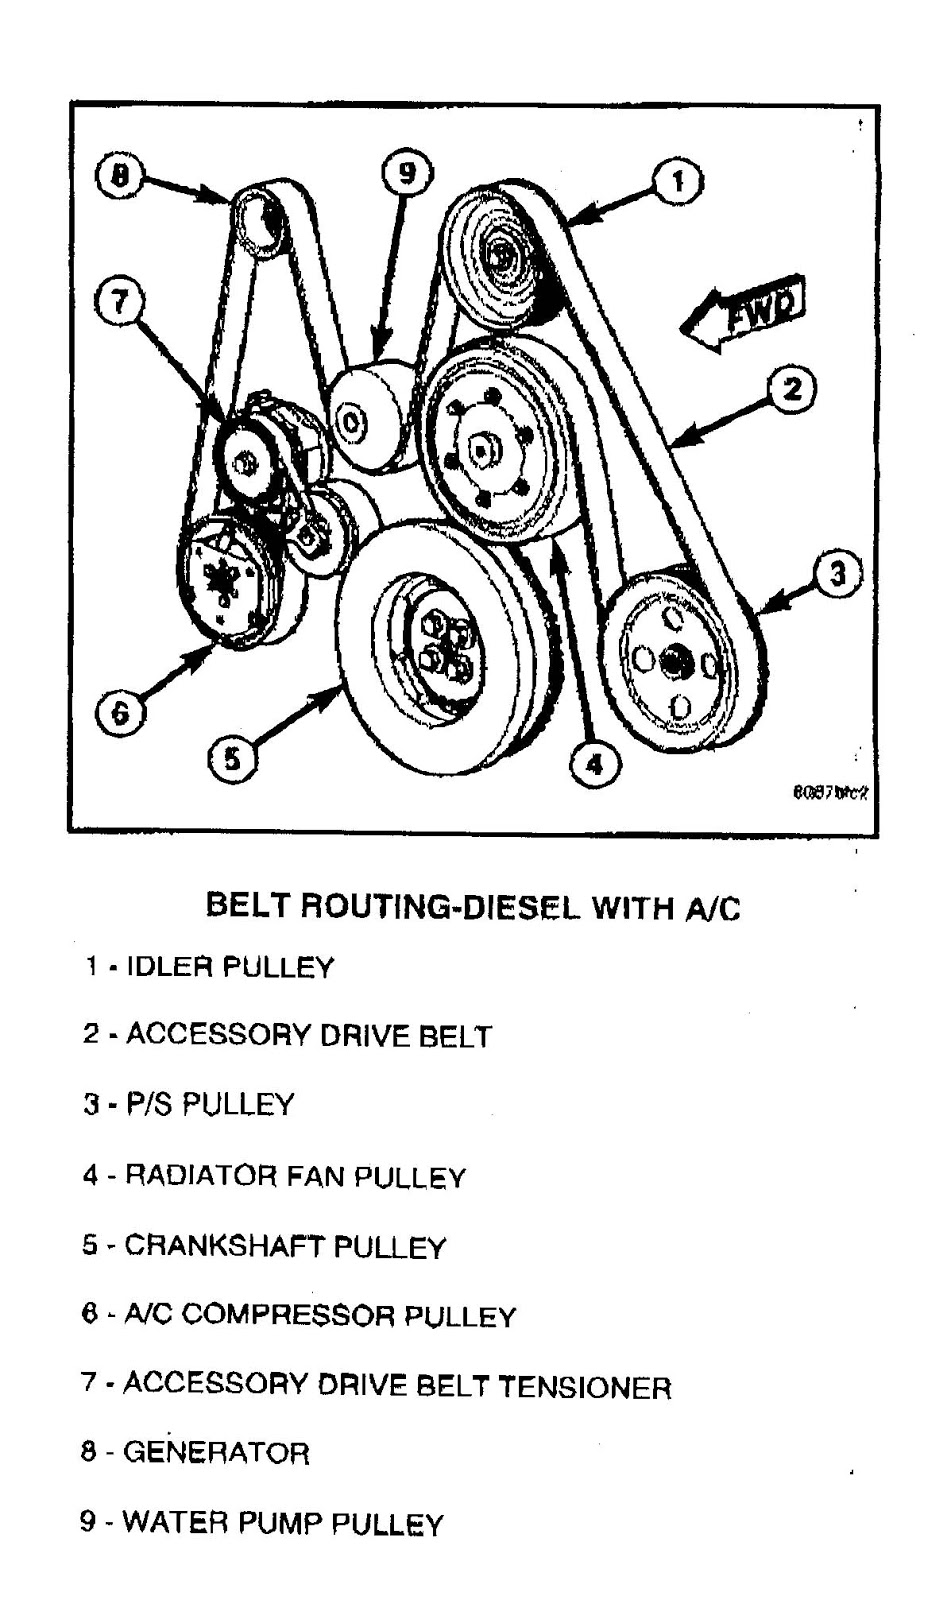 Dodge Ram Belt Diagram on Dodge Ram 1500 Serpentine Belt